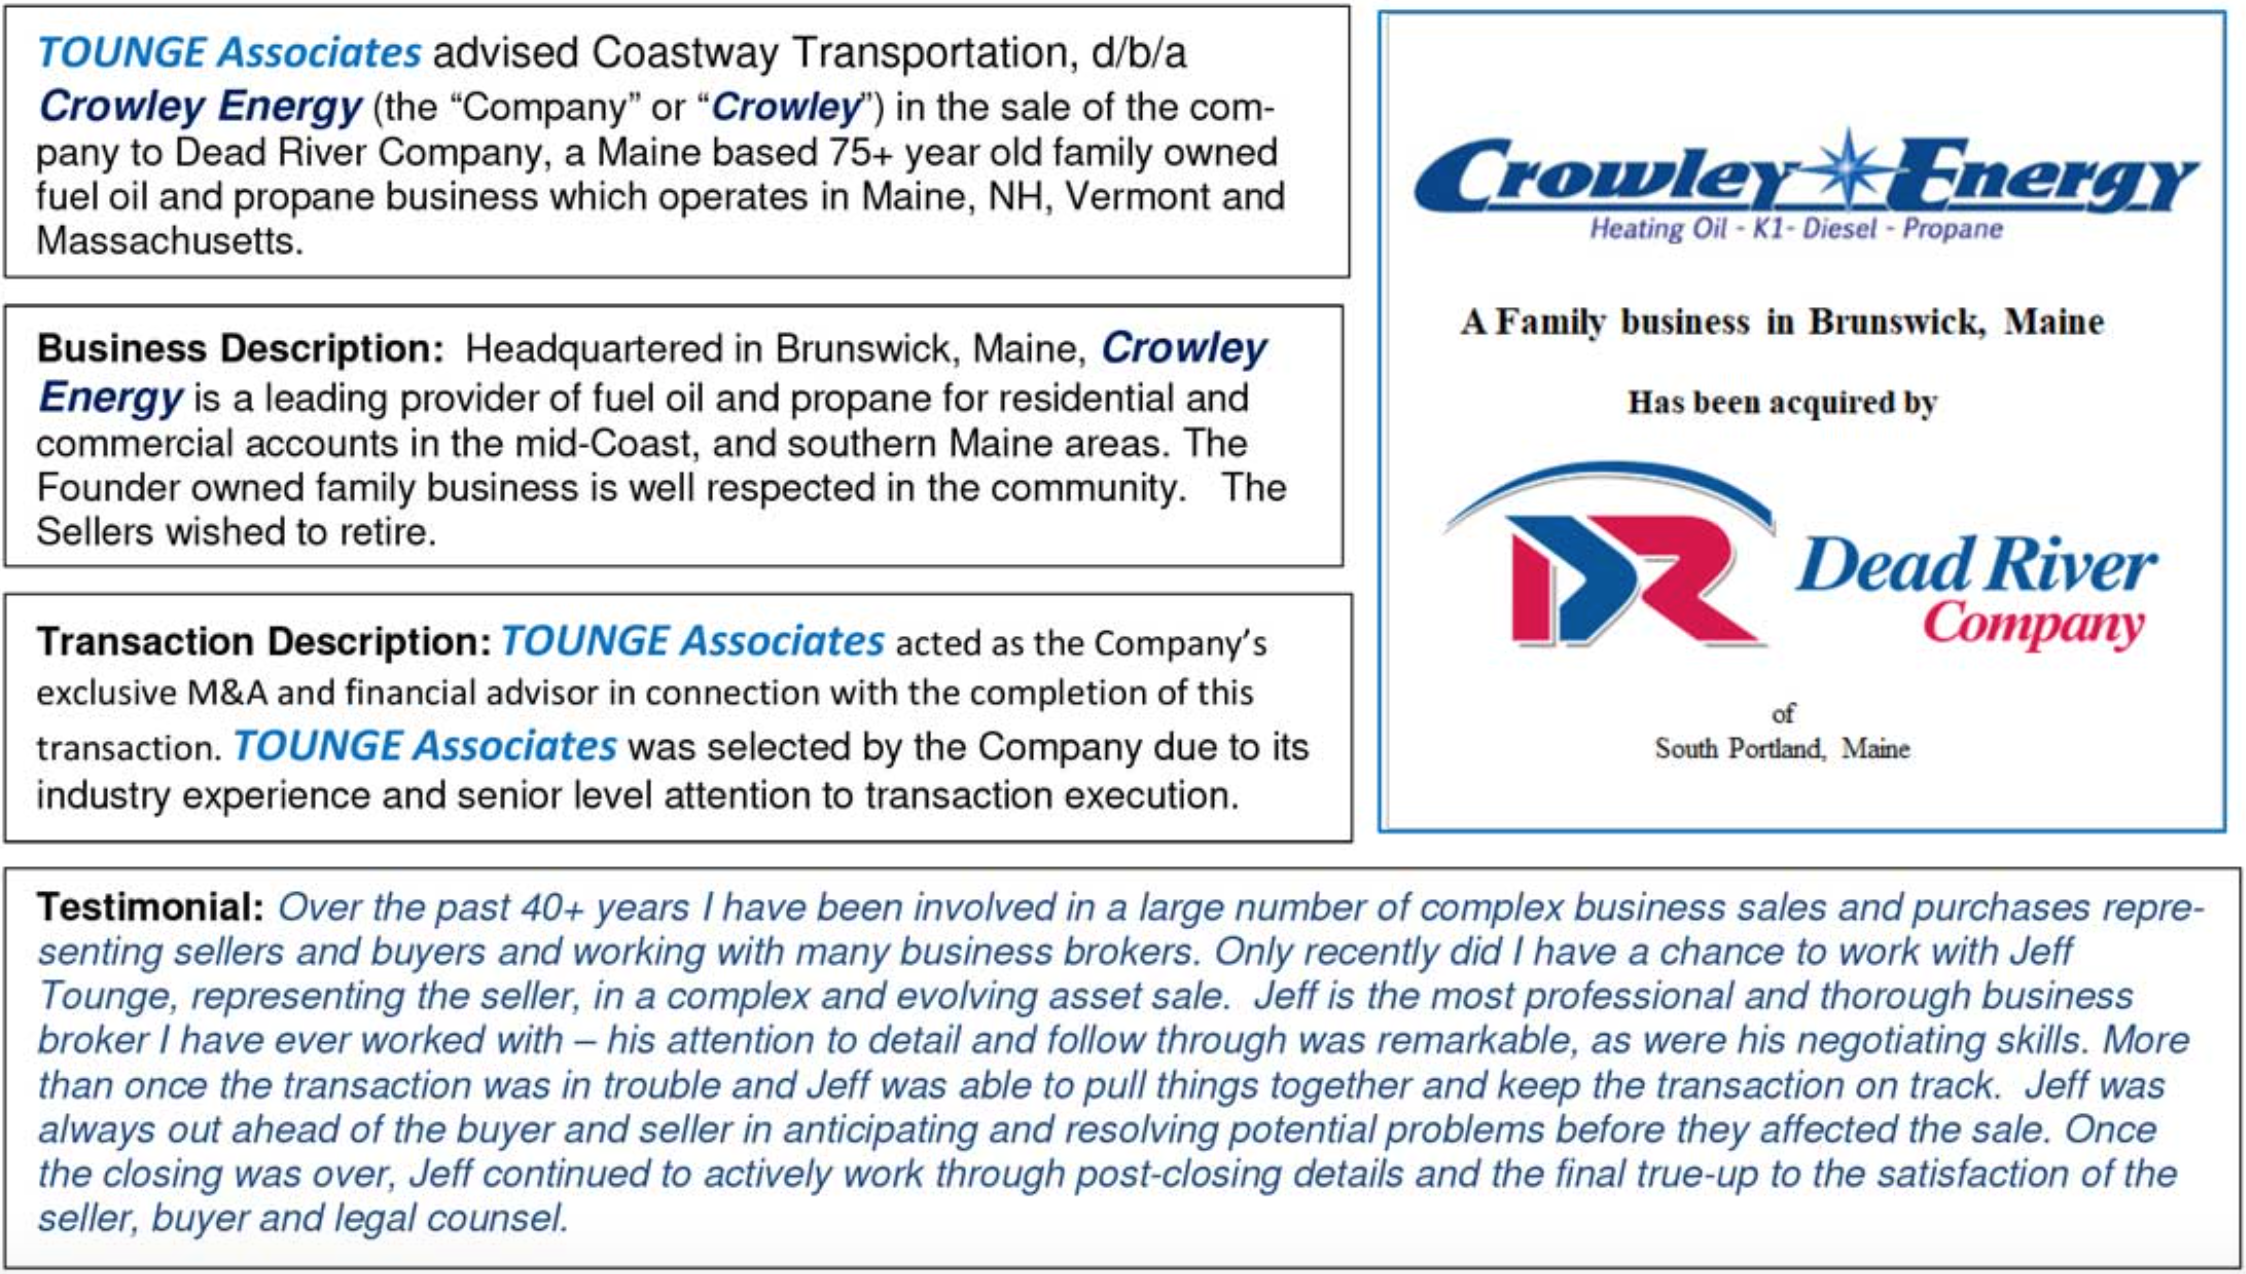 Tounge Associates and Crowley Energy